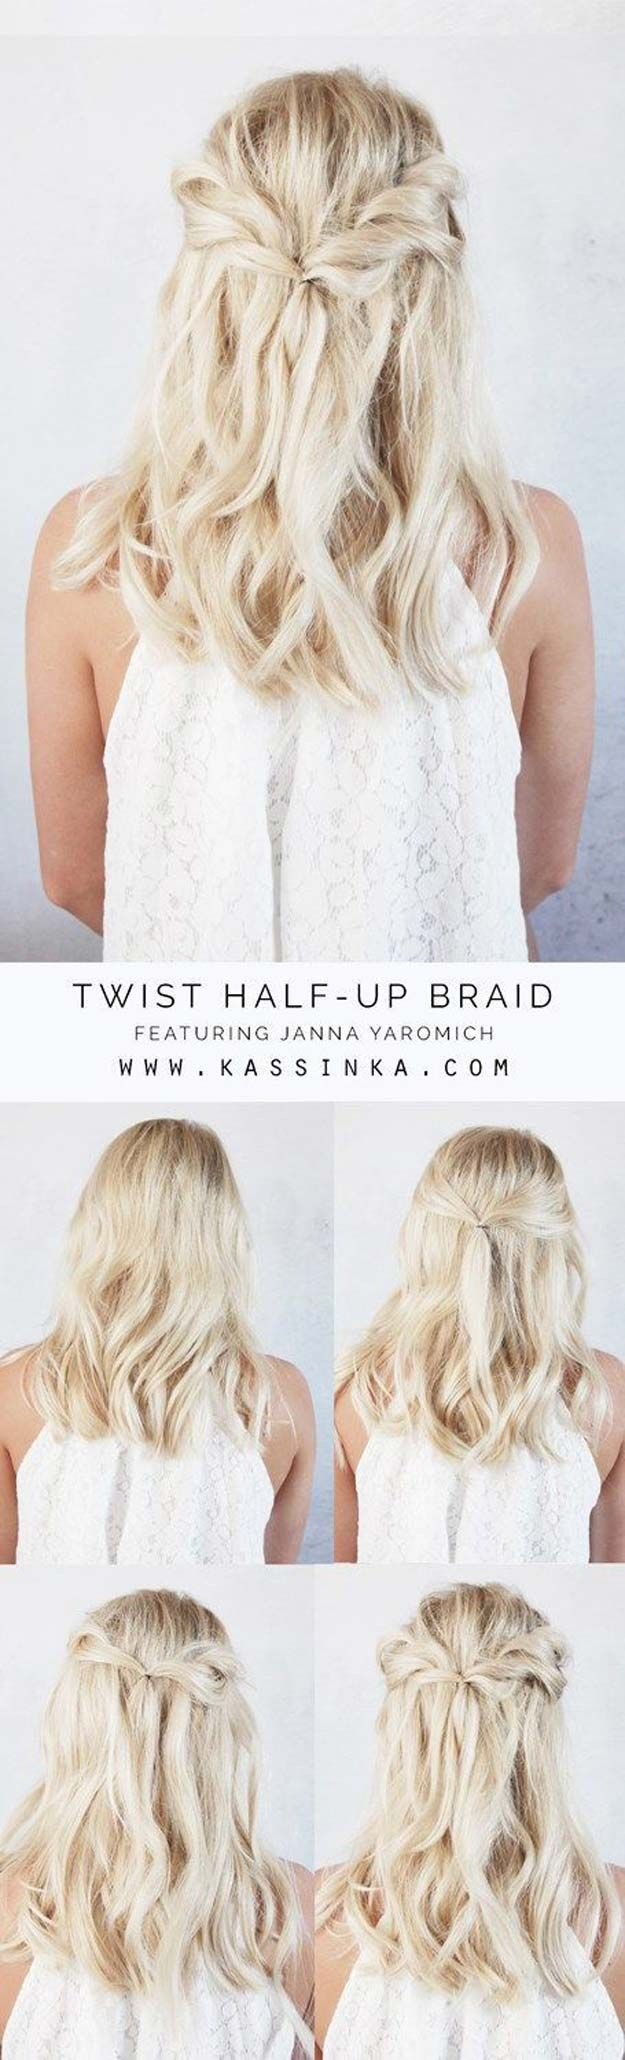 Short Hair Styles You Can Do In 10 Minutes or Less - Twist Half-up Braid - Easy ...